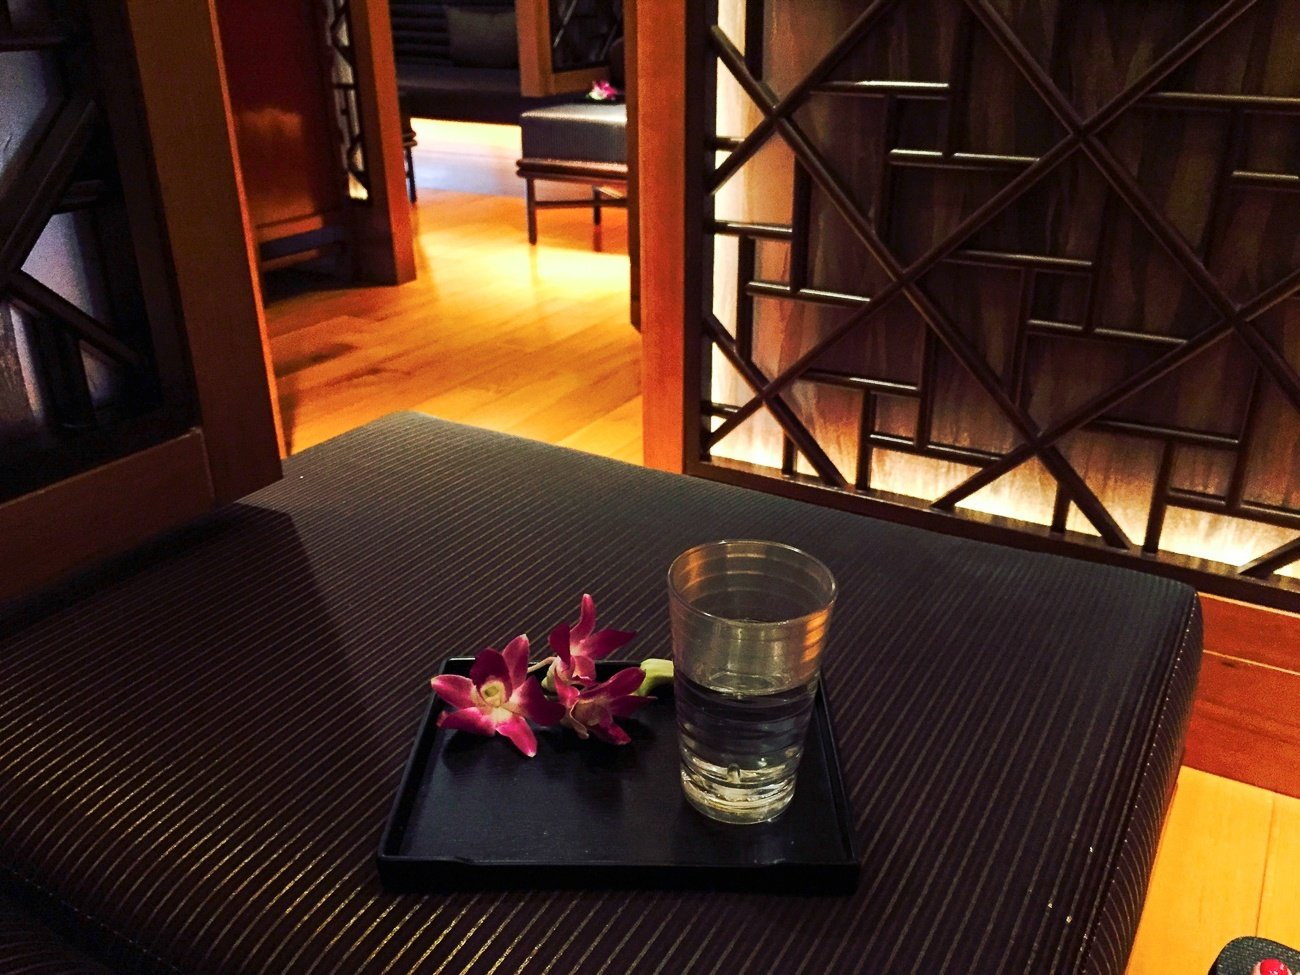 Tea room at The Mandarin Spa in Hong Kong